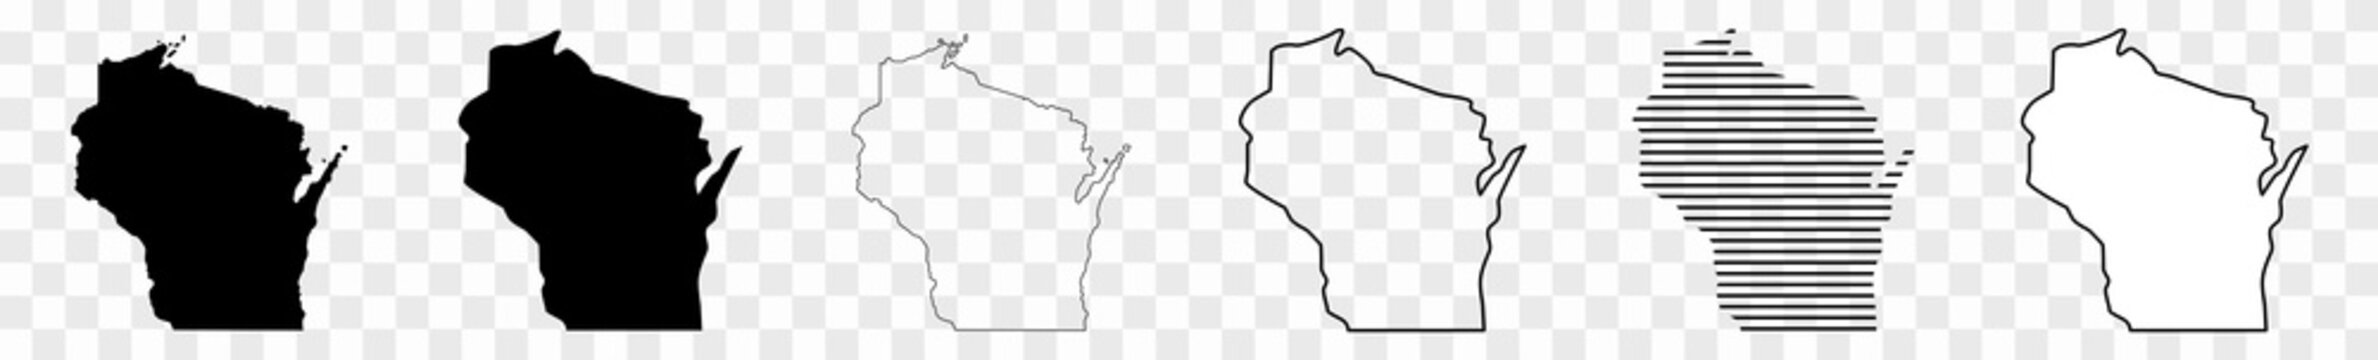 Wisconsin Map Black | State Border | United States | US America | Transparent Isolated | Variations